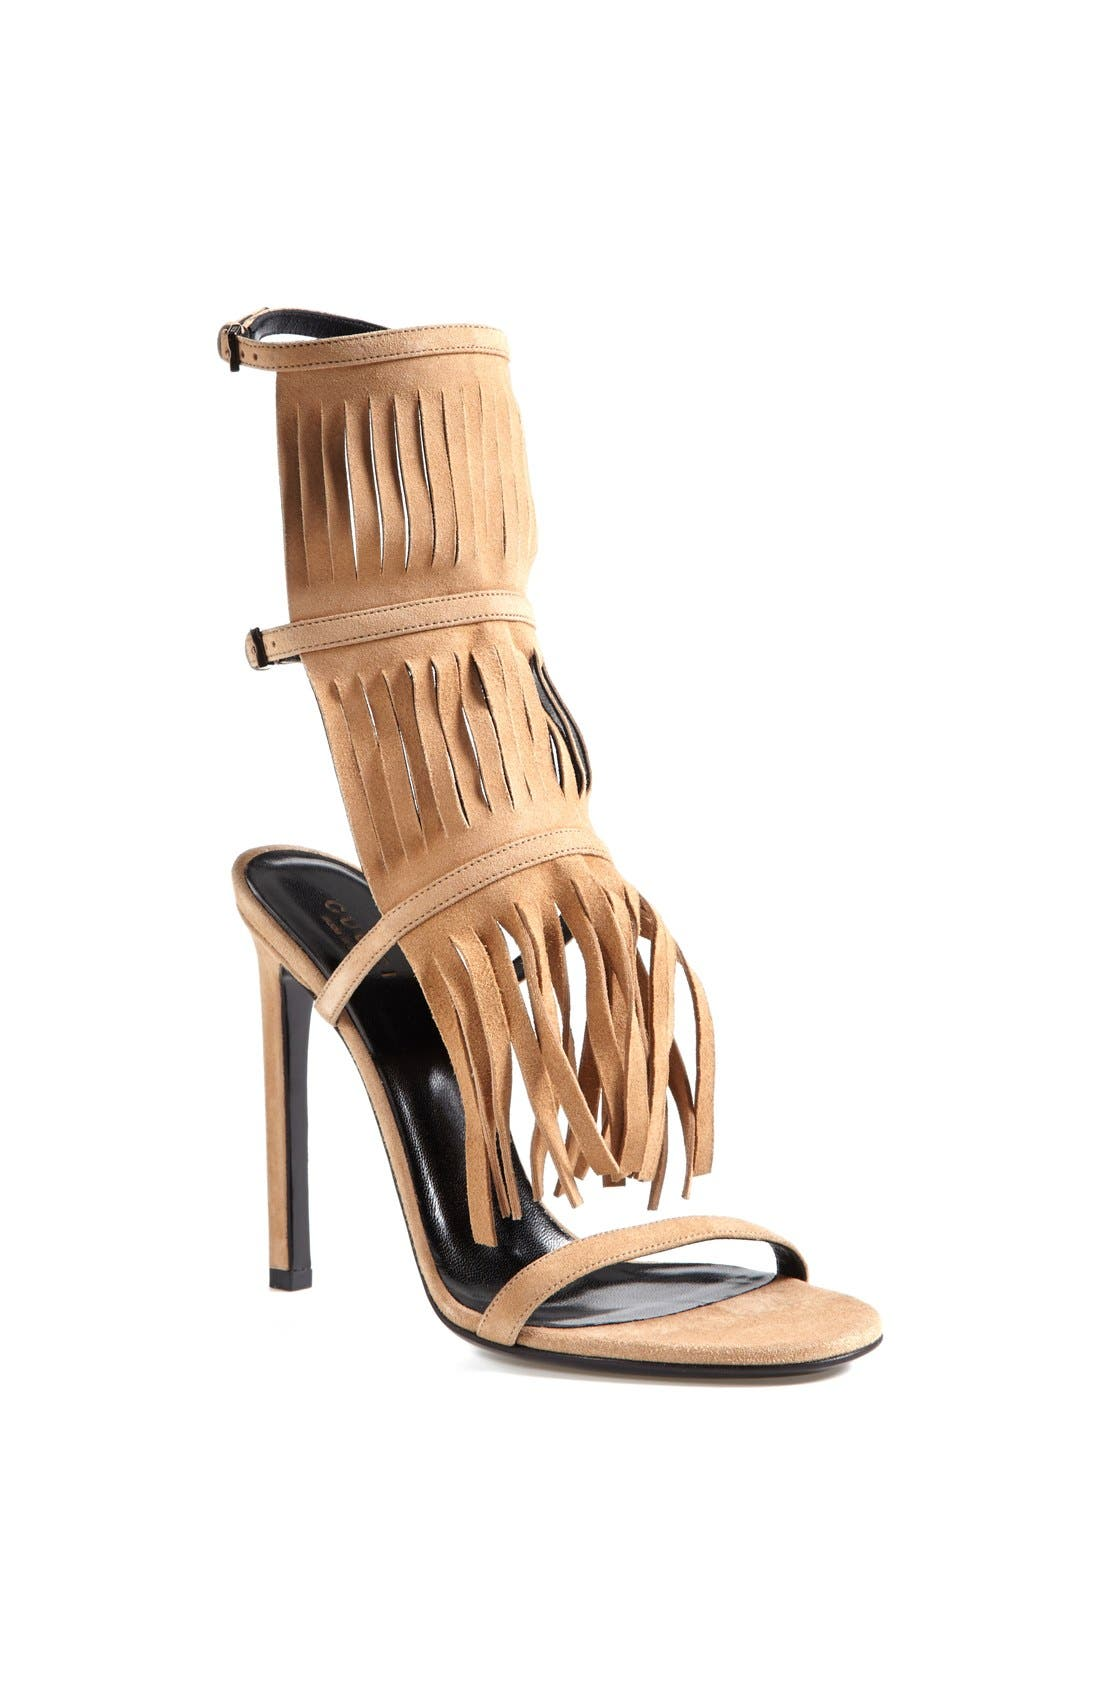 Alternate Image 1 Selected - Gucci 'Becky' Sandal